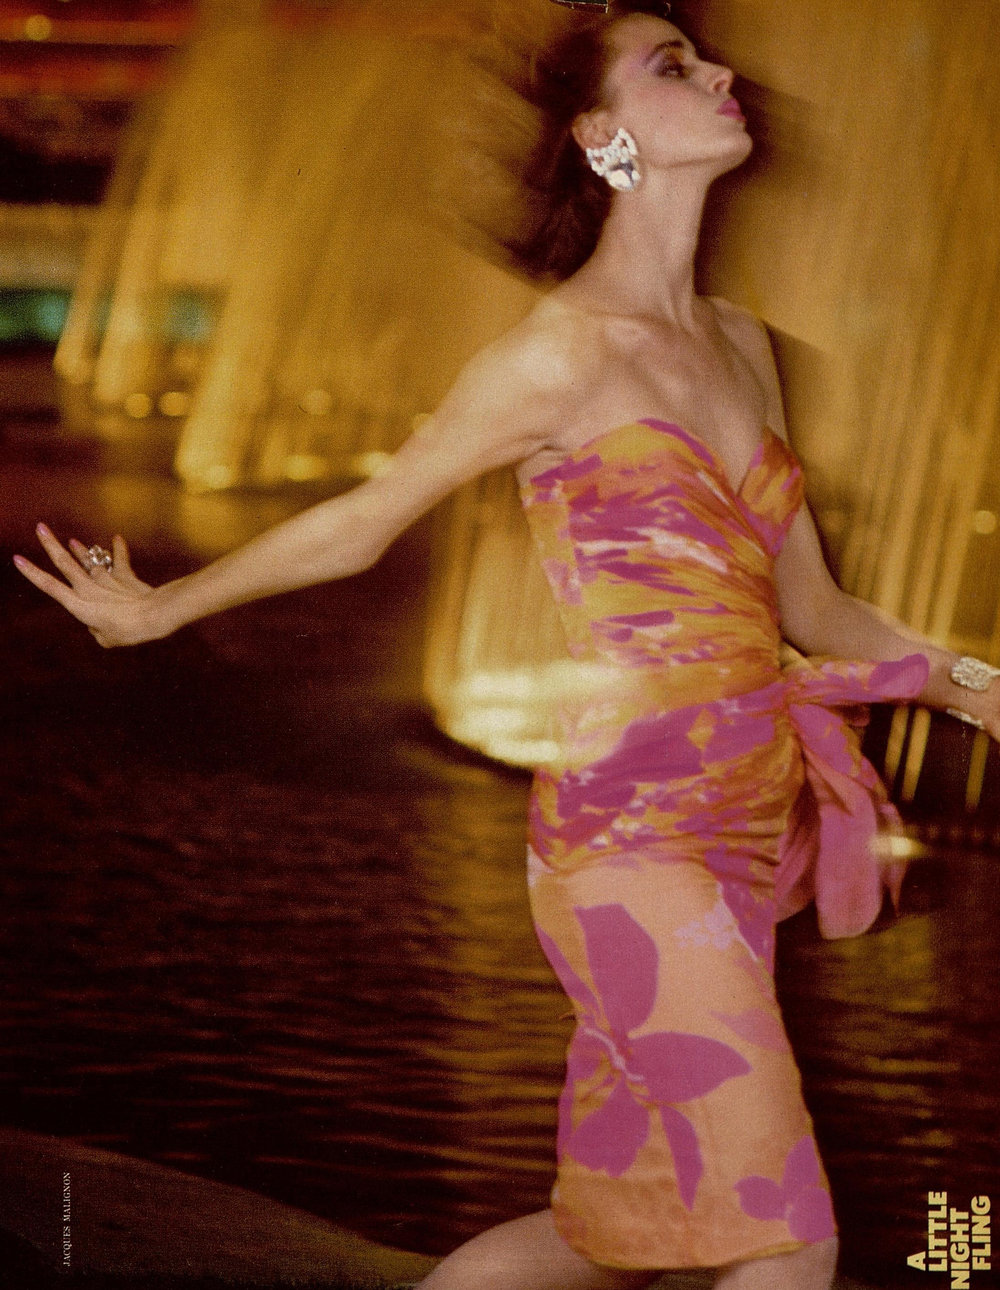 Ruched, brightly colored chiffon shot by Jacques Malignon for Harper's Bazaar, March 1985.